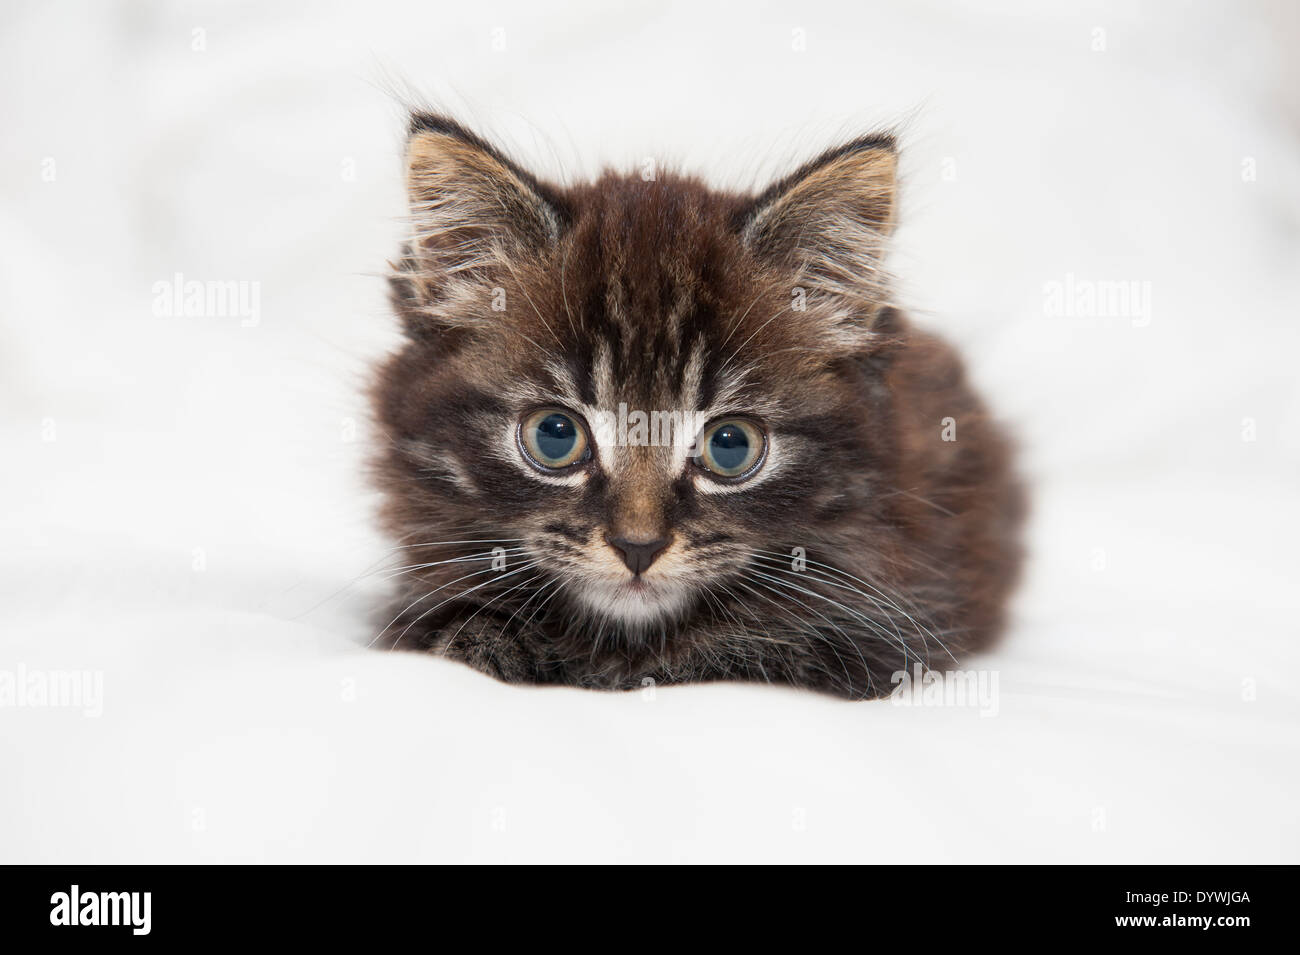 fluffy brown tabby kitten on stock photos fluffy brown tabby